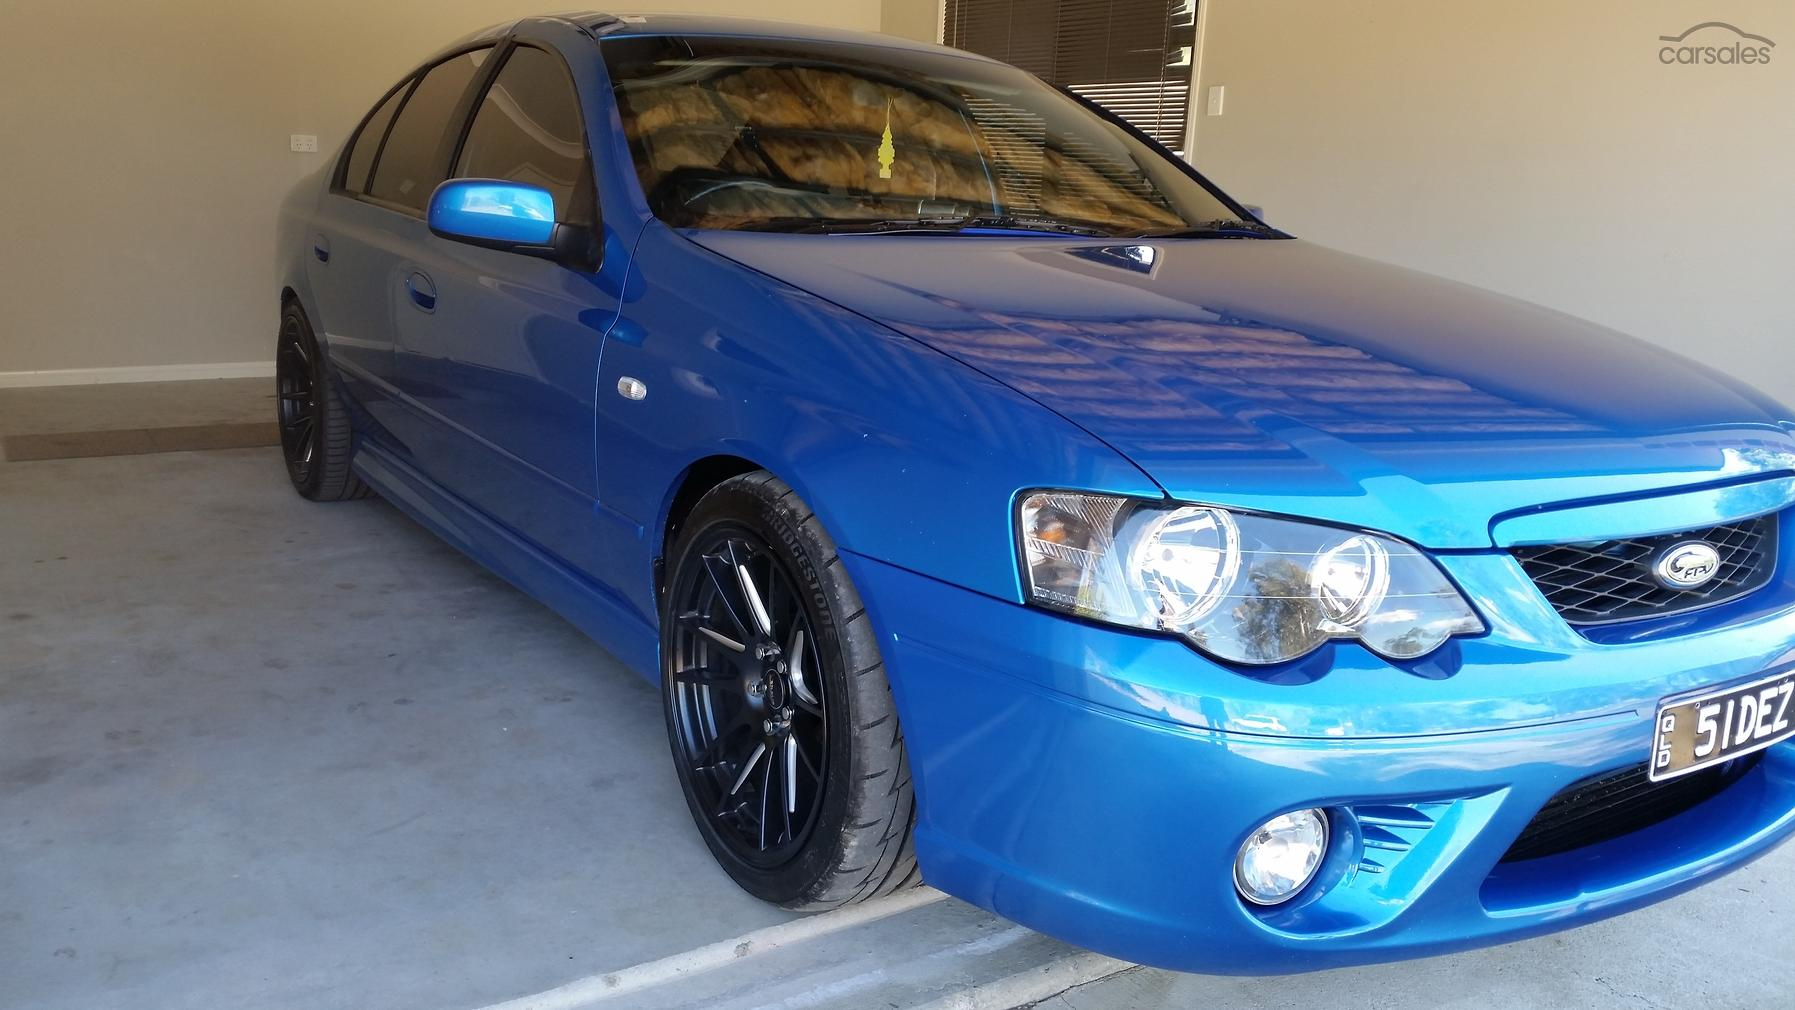 2003 Ford Falcon Xr6 Turbo Ba Manual Sse Ad 5514861 Wiring Schematics For An Au Quotpremium Sound Systemquot Australian